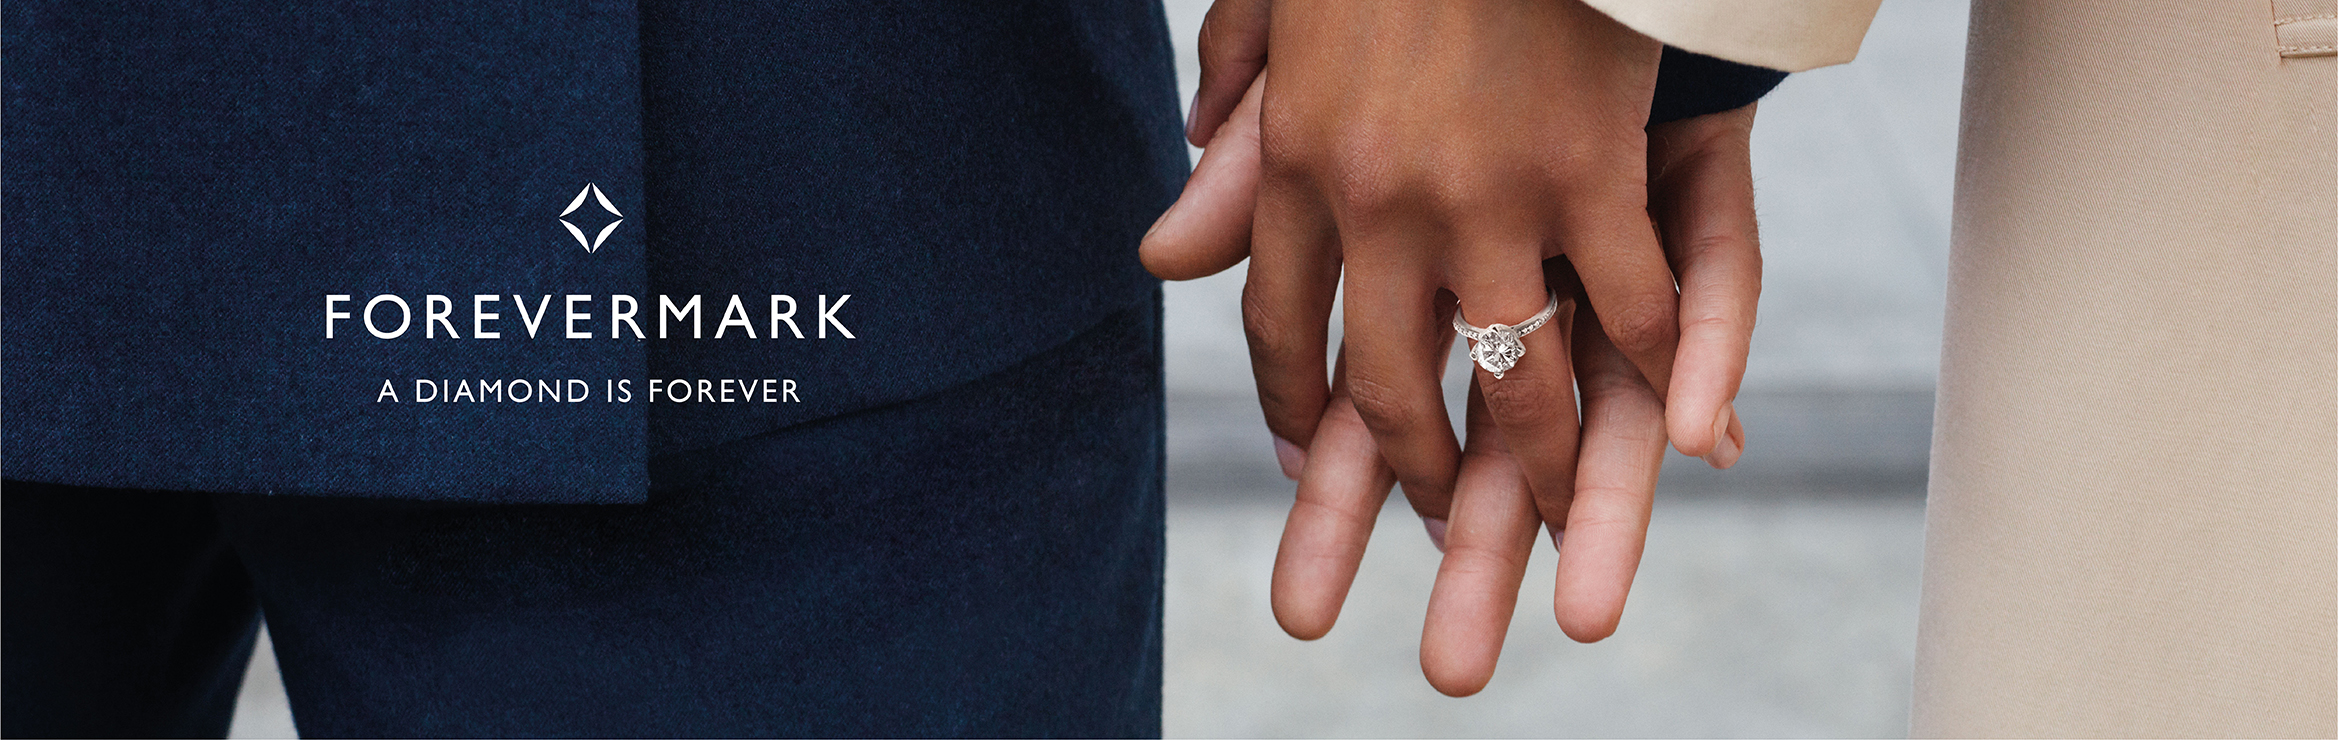 Forevermark Royal Princess Cut Diamond Ring